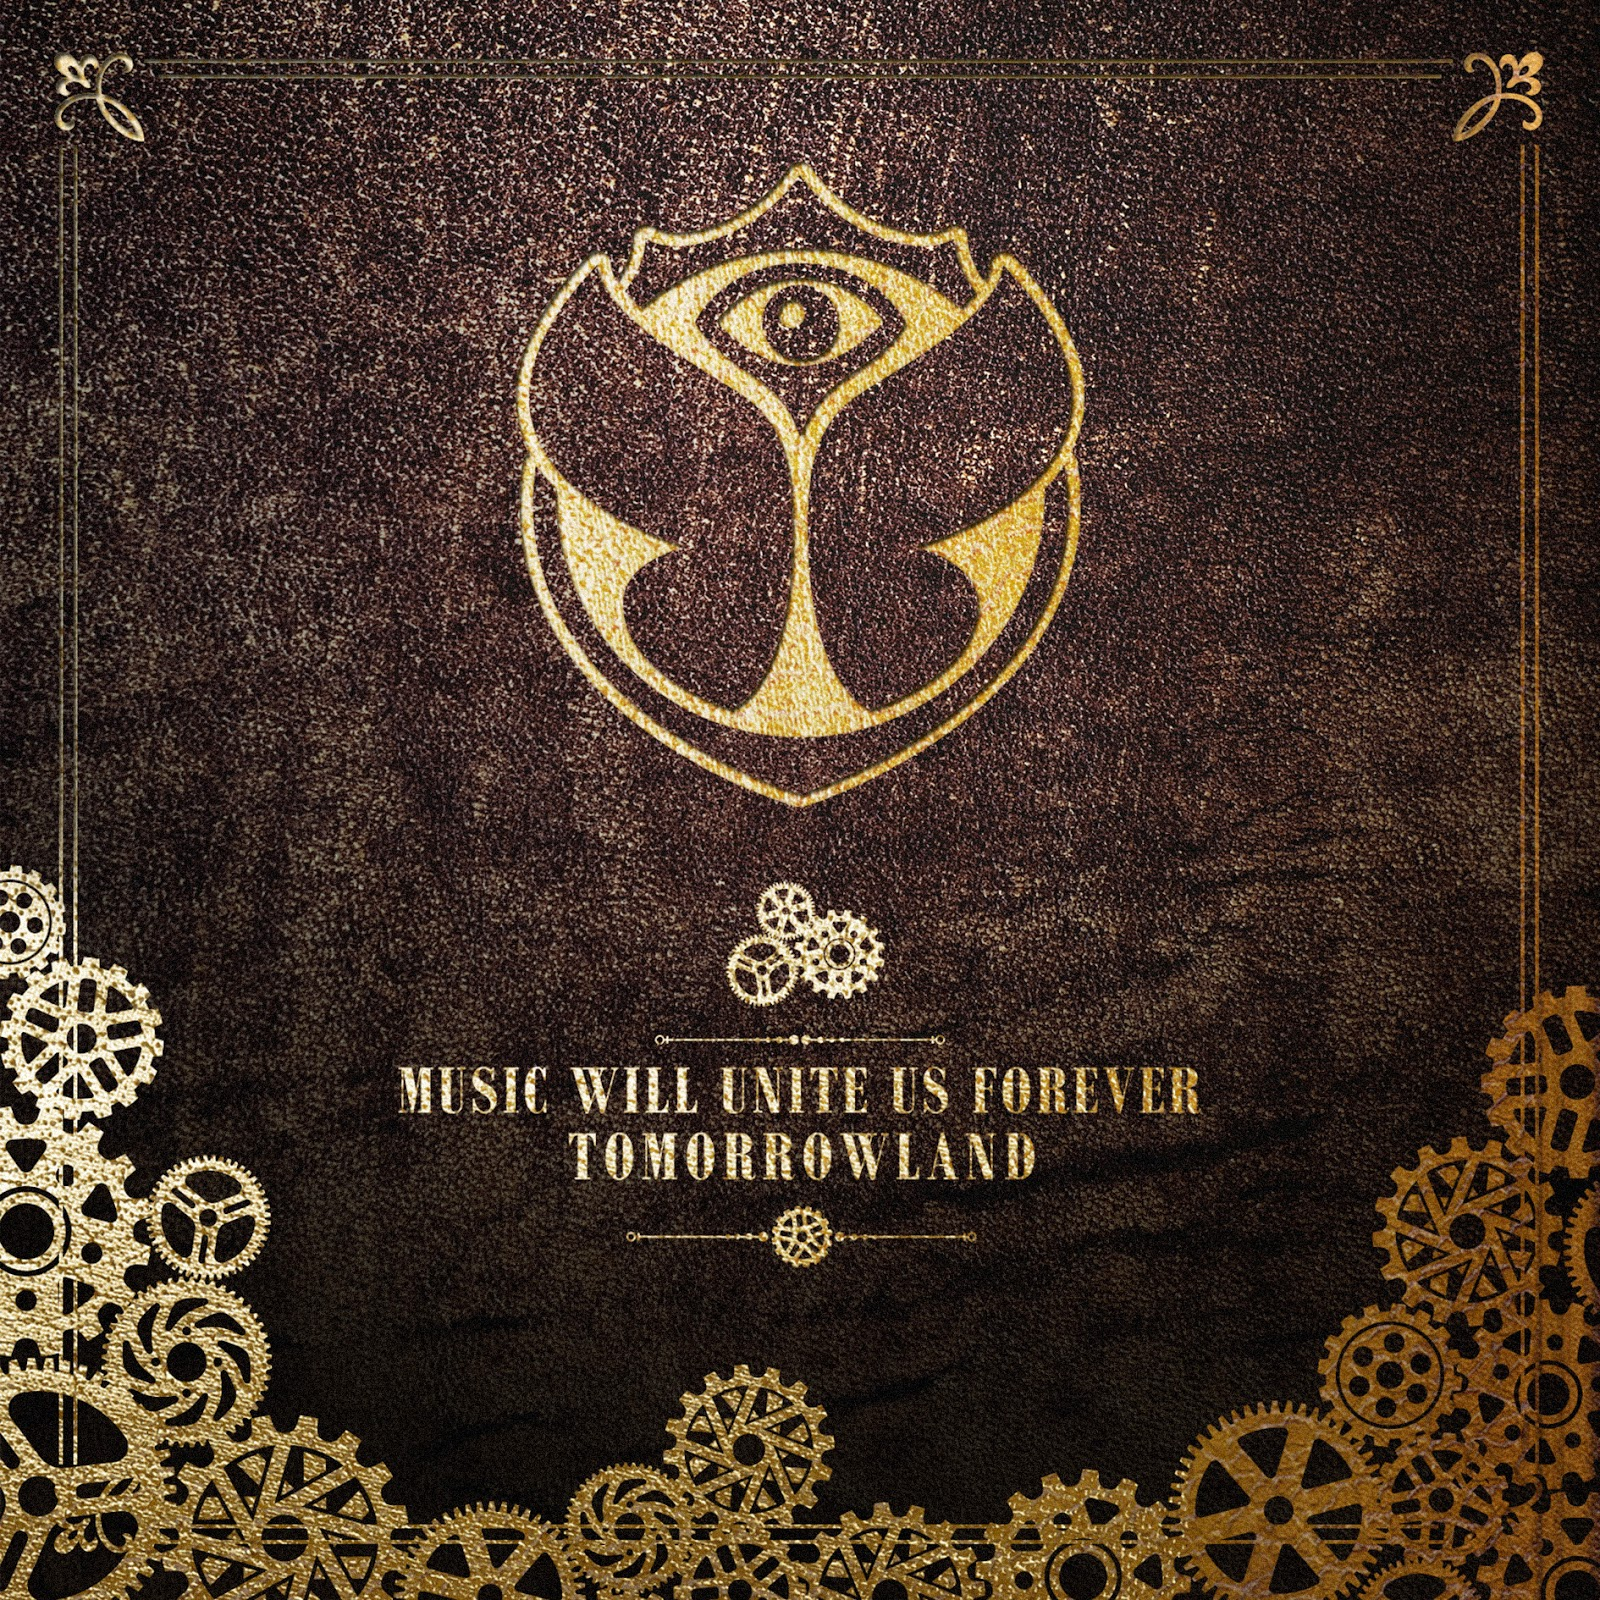 TOMORROWLAND COMPILATION ALBUM